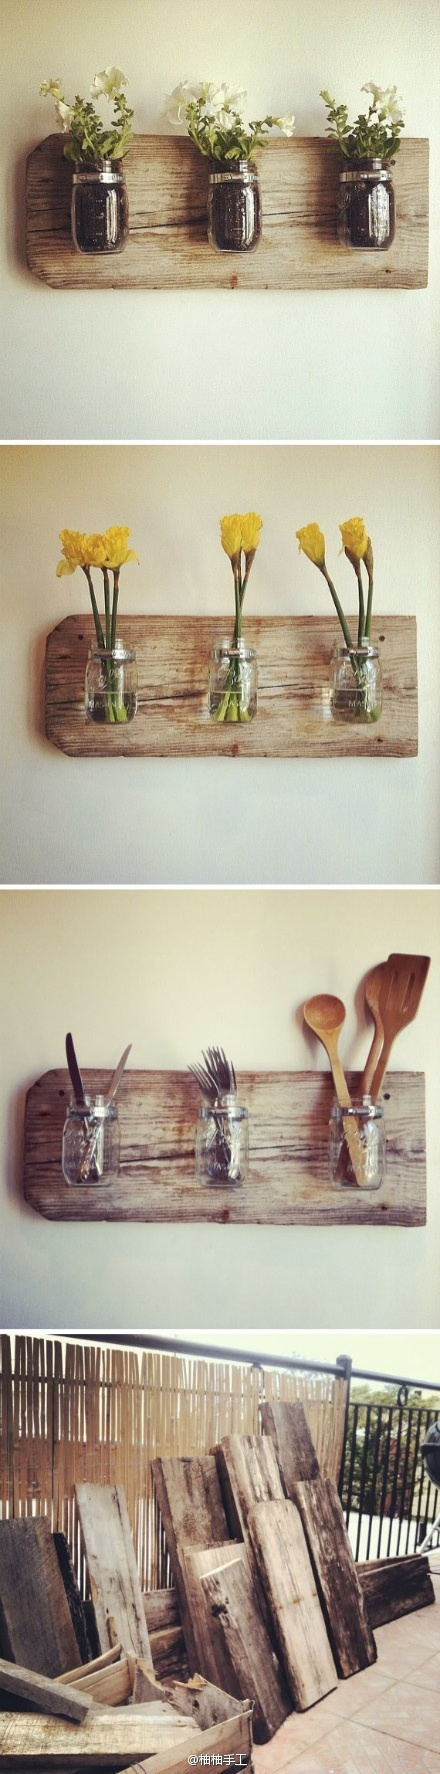 More uses for scrap wood